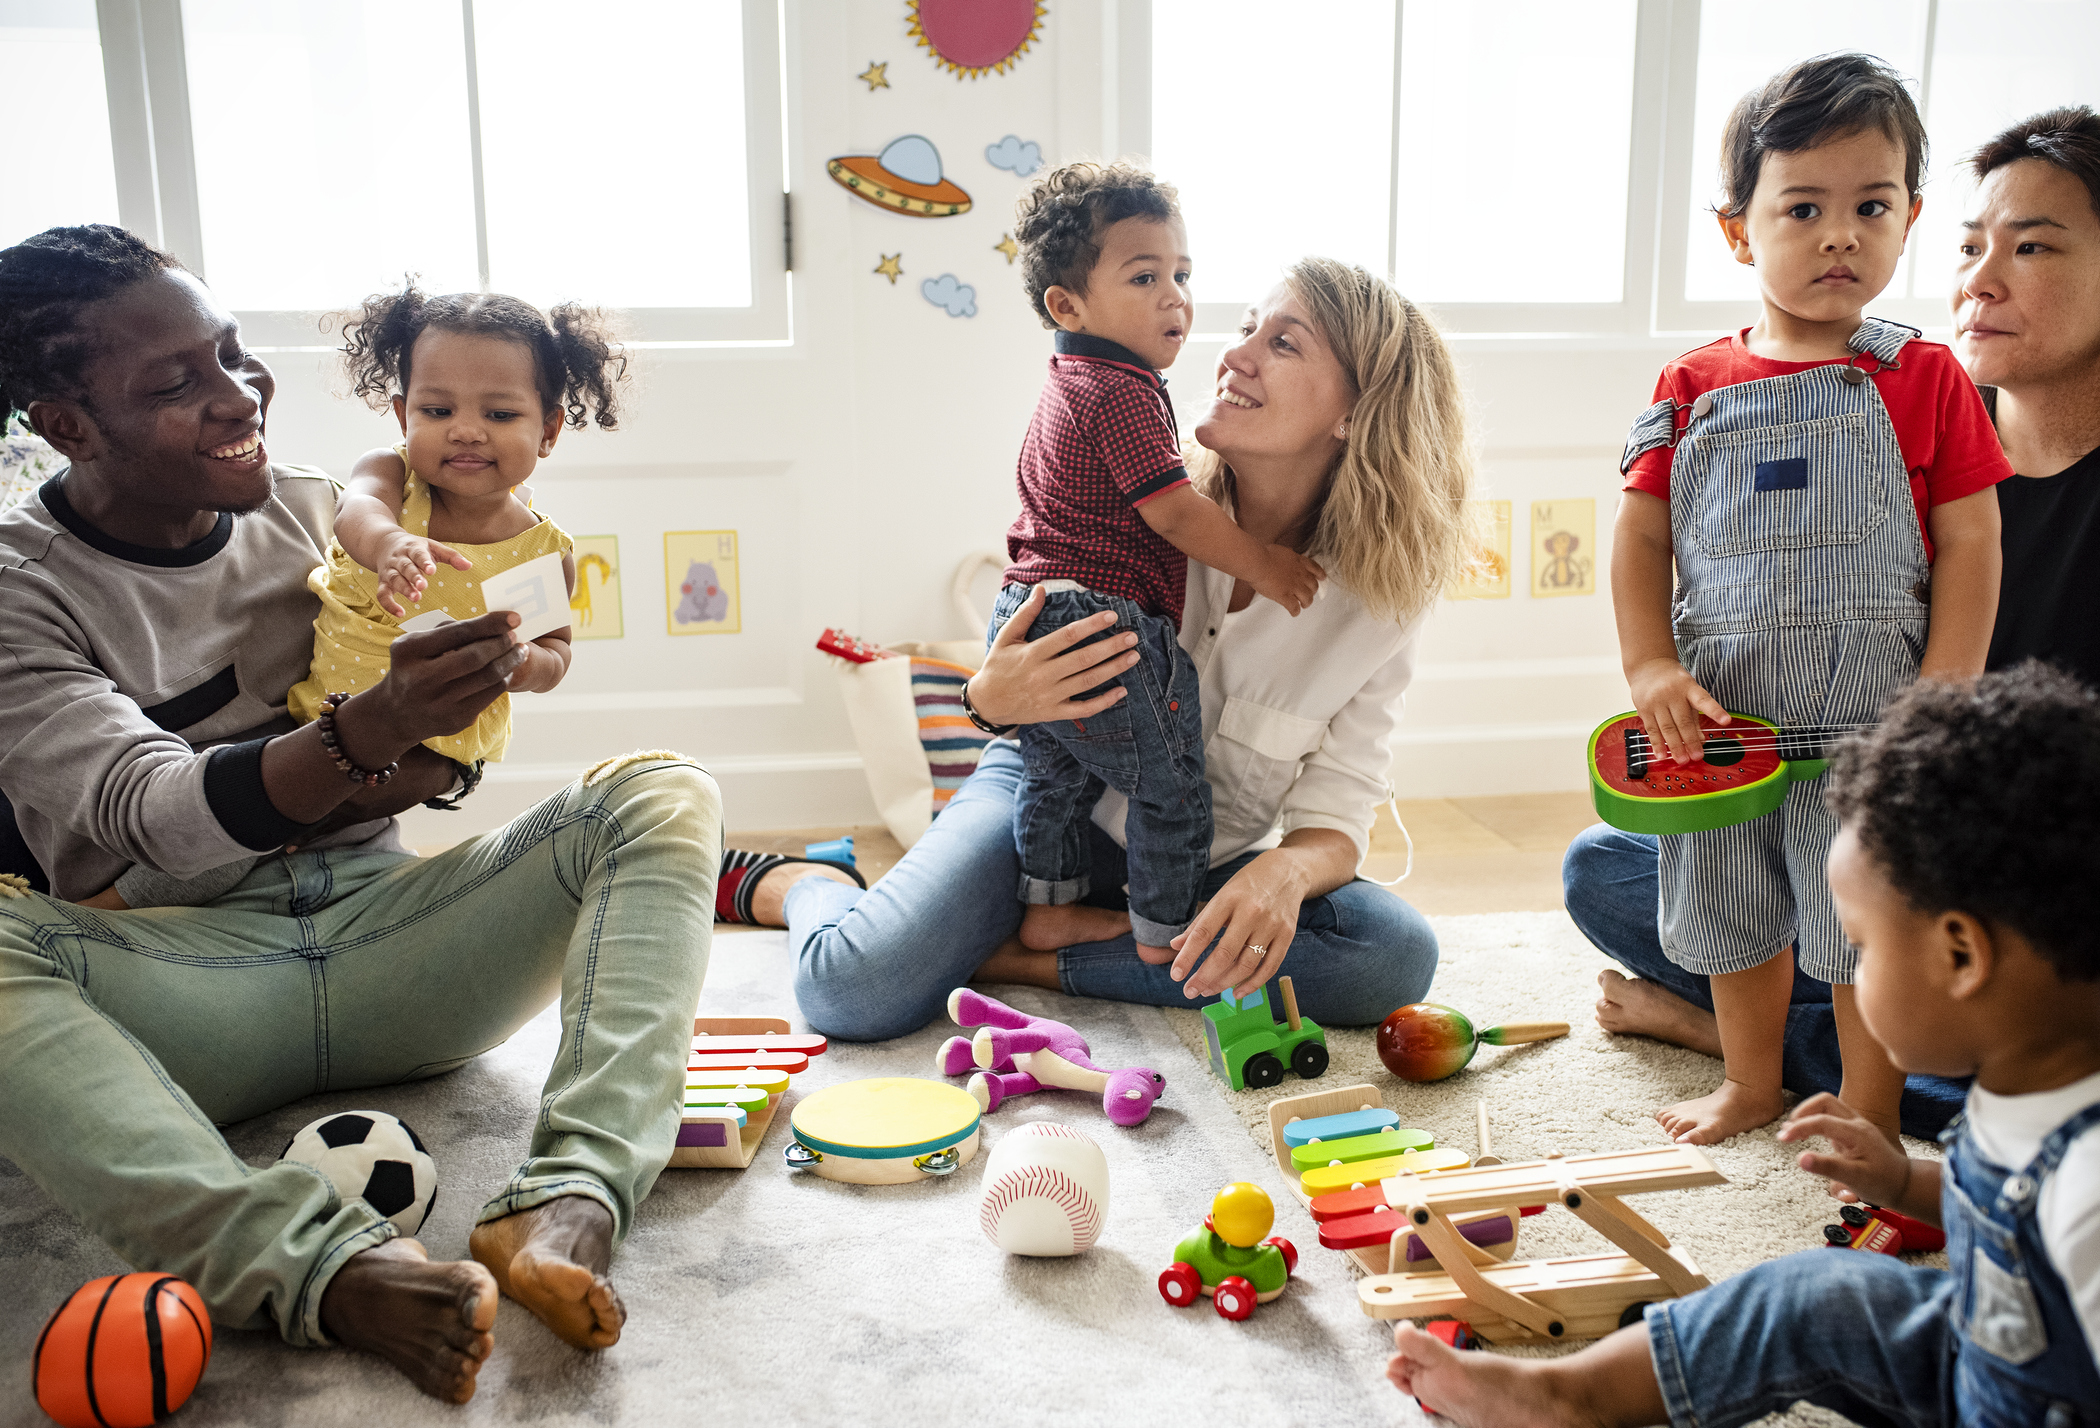 Children playing with toys alongside their parents